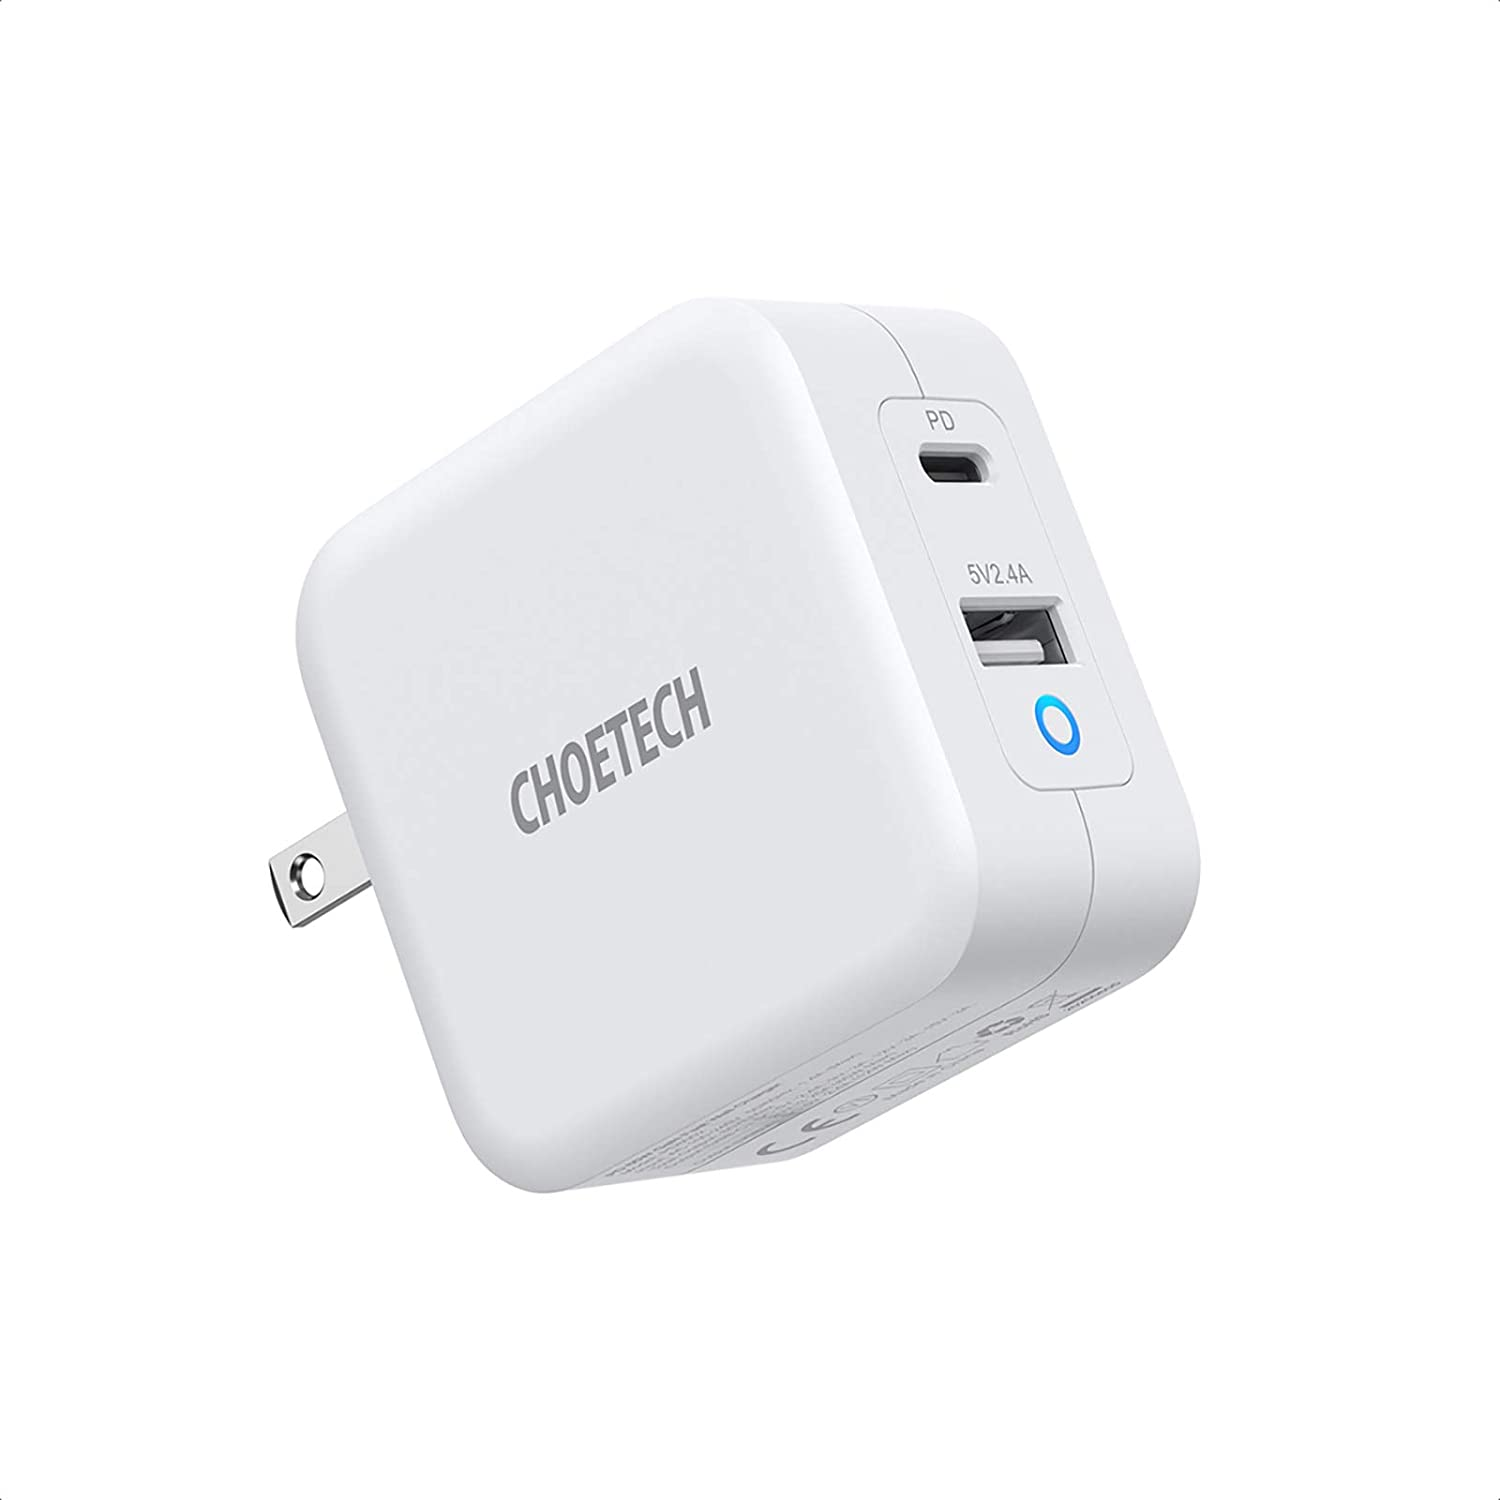 USB C Charger CHOETECH 65W PD 3.0 Fast Charger, GaN Fast Charging USB C Wall Charger 2-Port Portable Charger Adapter for MacBook Pro Air iPad Pro iPhone 11 Pro Max SE Nintendo Galaxy and More